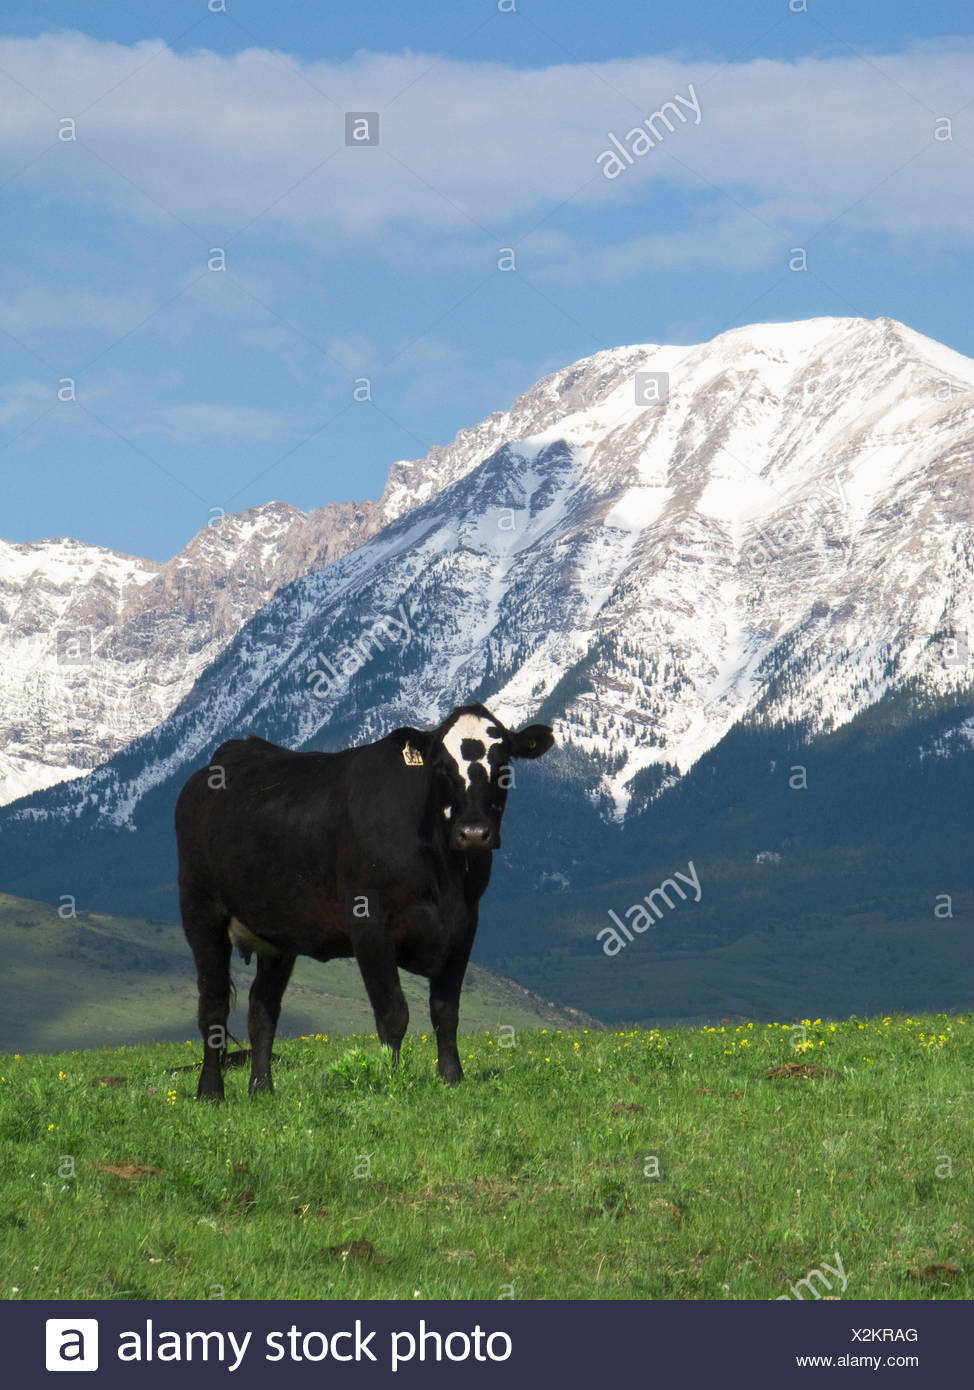 Black speckled face beef cow on a foothill pasture with snow covered Canadian Rockies in the background / Alberta, Canada. - Stock Image